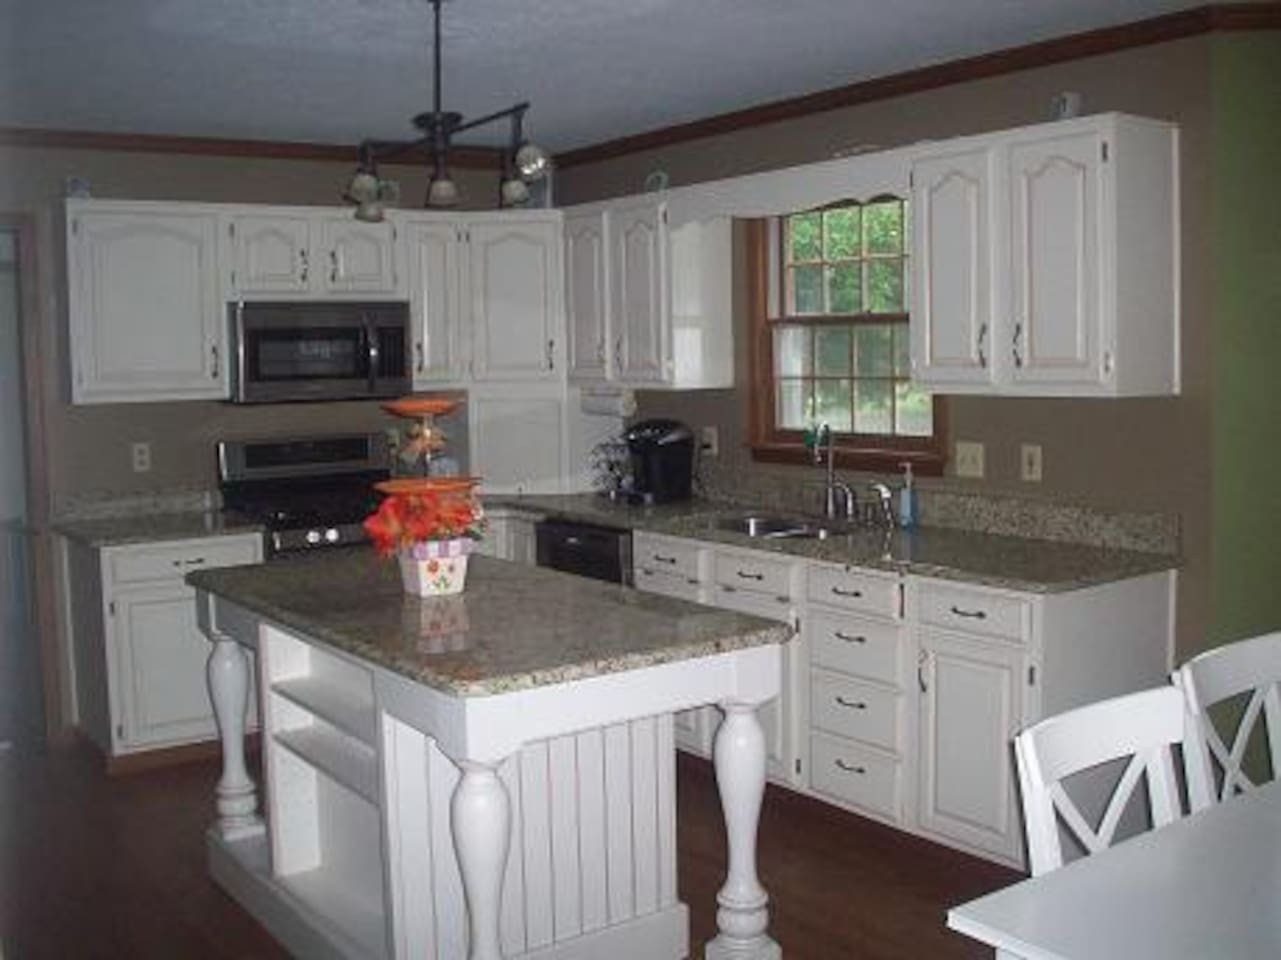 Feel free to enjoy this magnificent kitchen.